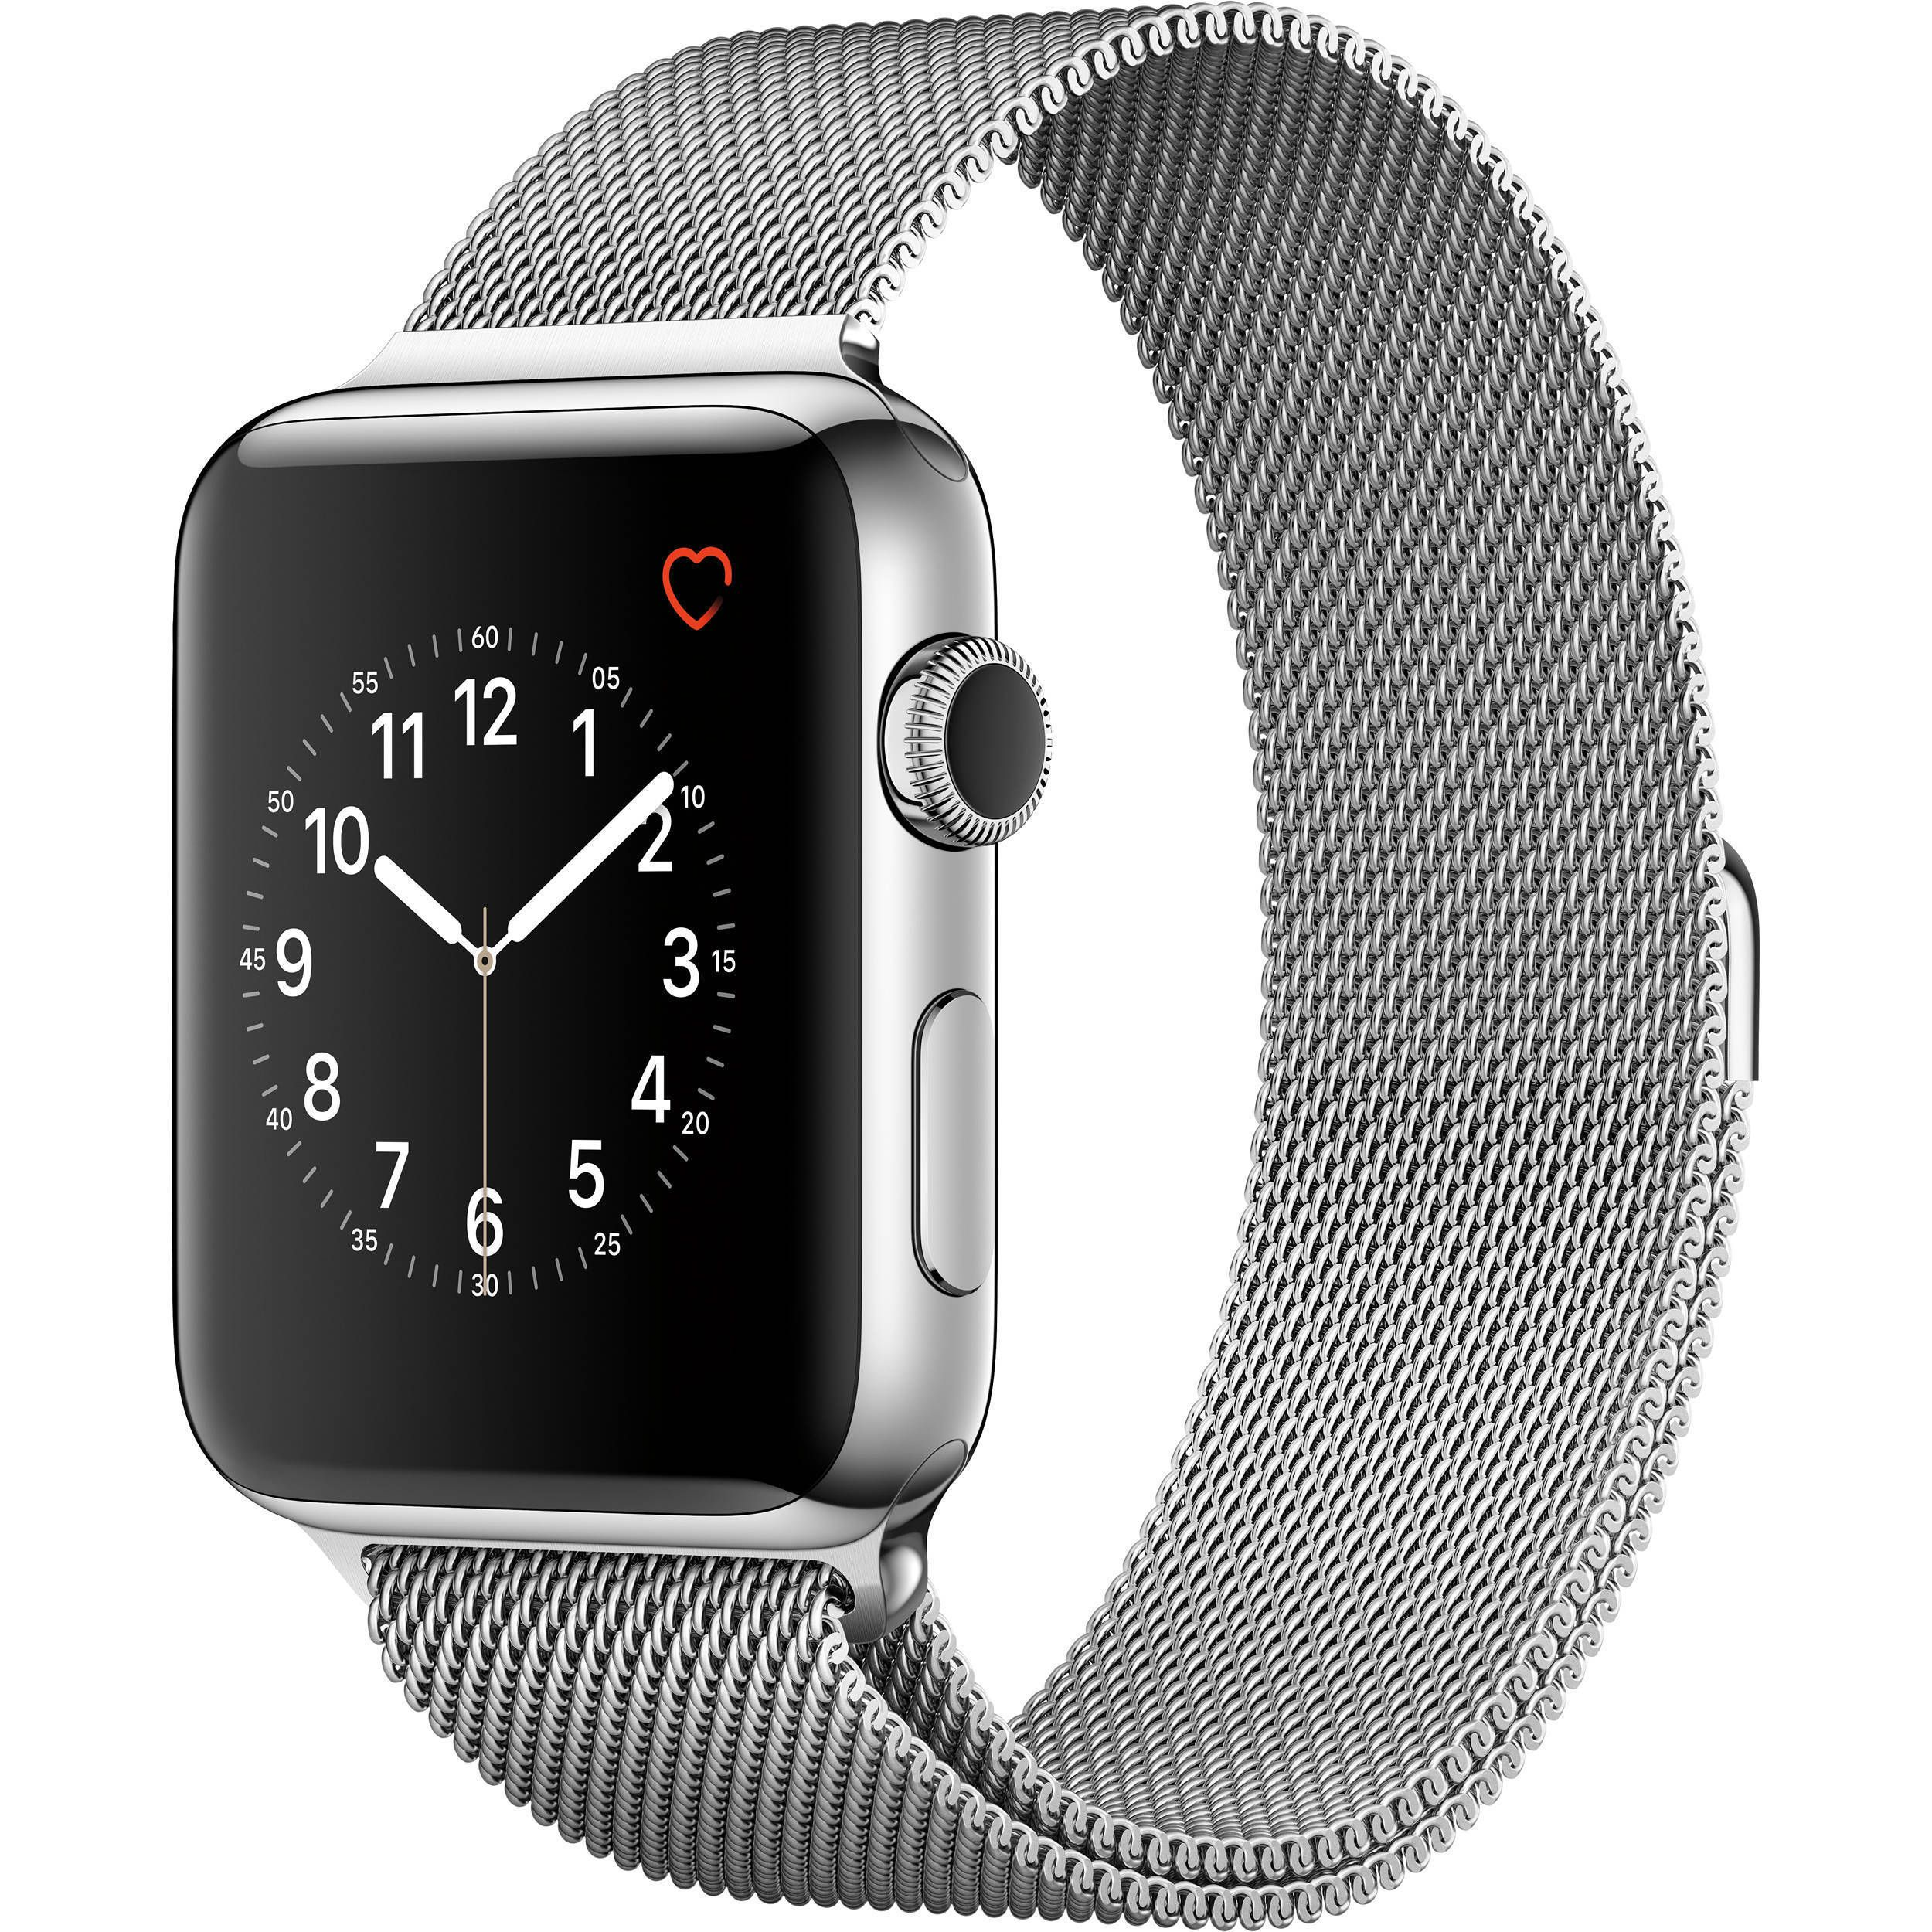 Apple Watch Series 2 42mm Smartwatch Products In 2018 Pinterest Xiaomi 042ampquot Screen Mi Band Smart Wristband Replace Black